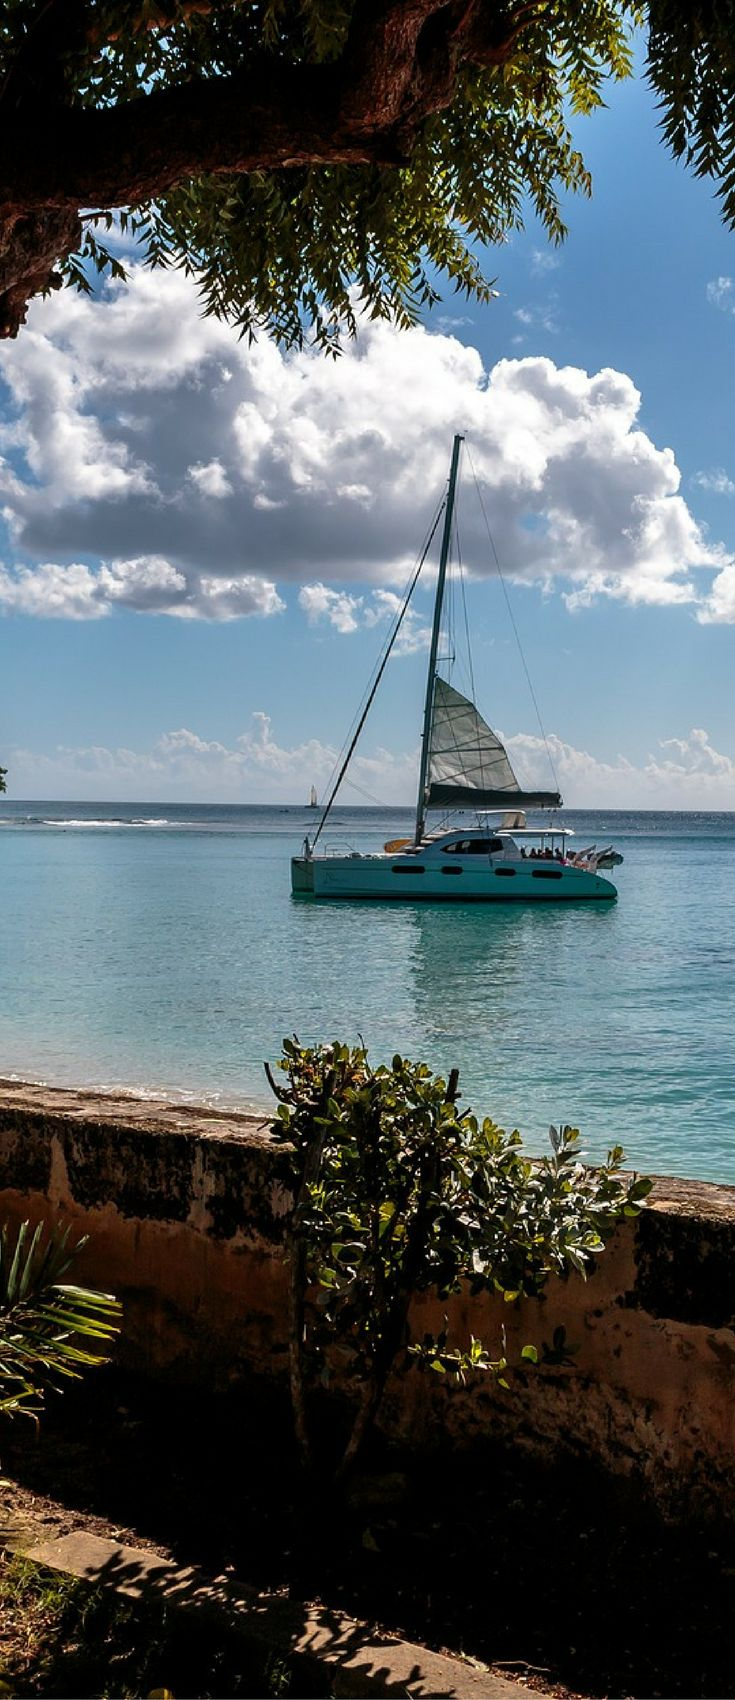 Barbados is tailor made for newlyweds. It serves up a spectacular honeymoon for couples who crave the classic combo of romance and relaxation, but it also offers an unusually wide variety of activities to share. It often surpasses its island neighbors with its white sand beaches, coral reefs and dramatic sunsets.  Click through to find out our top recommendations and tips for honeymooning in Barbados.